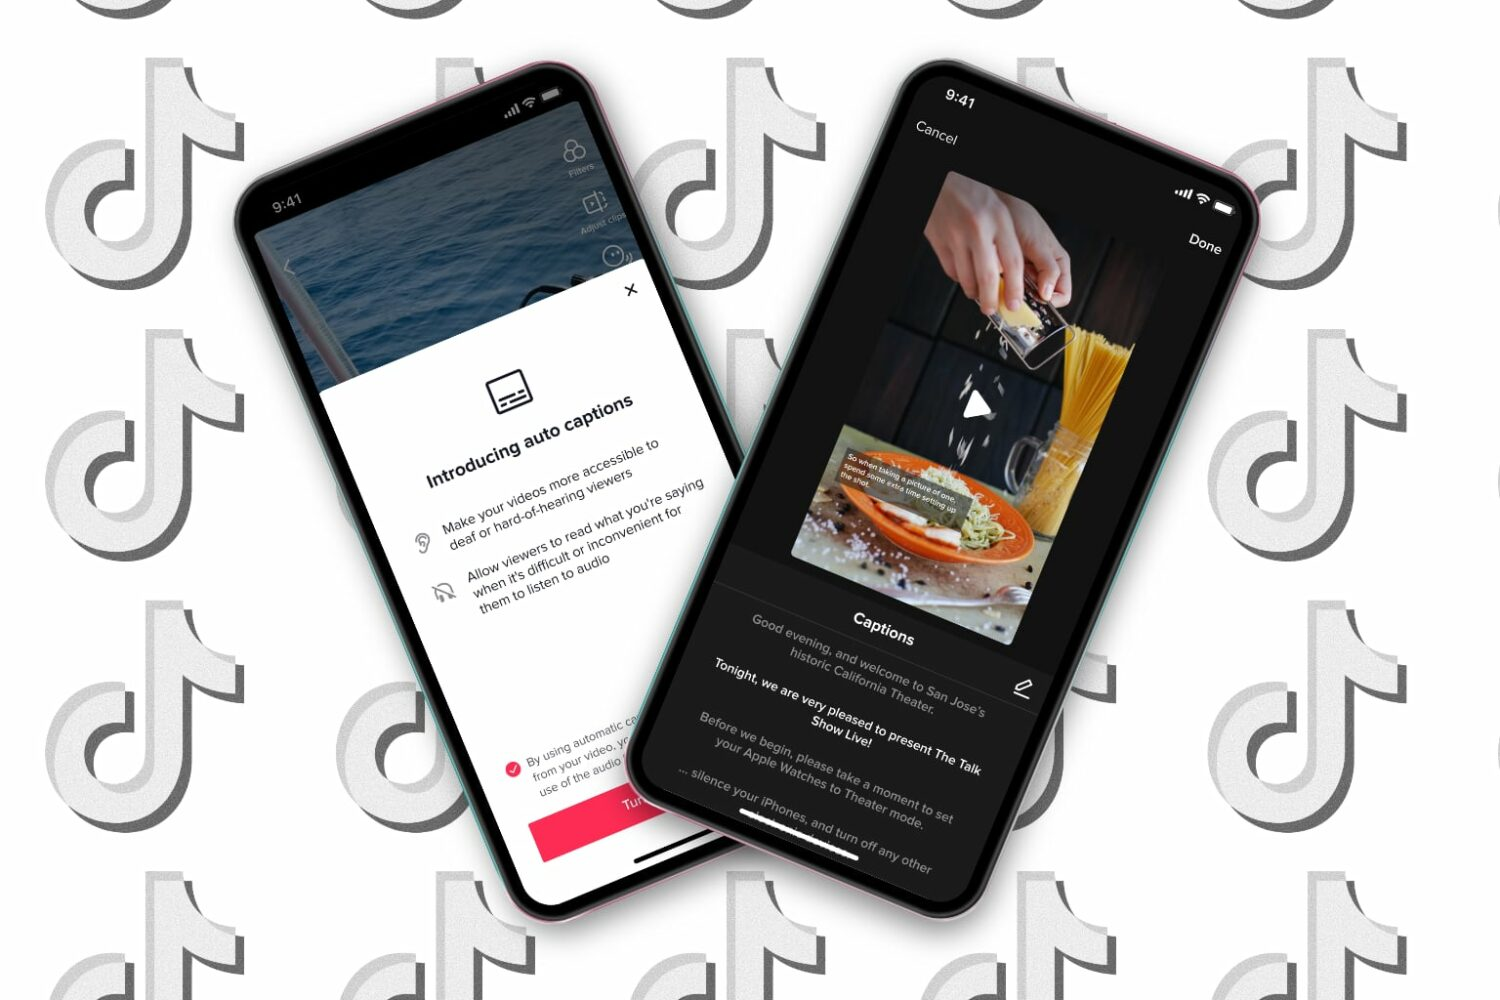 Featured image showing two iPhones showing off TikTok auto captions